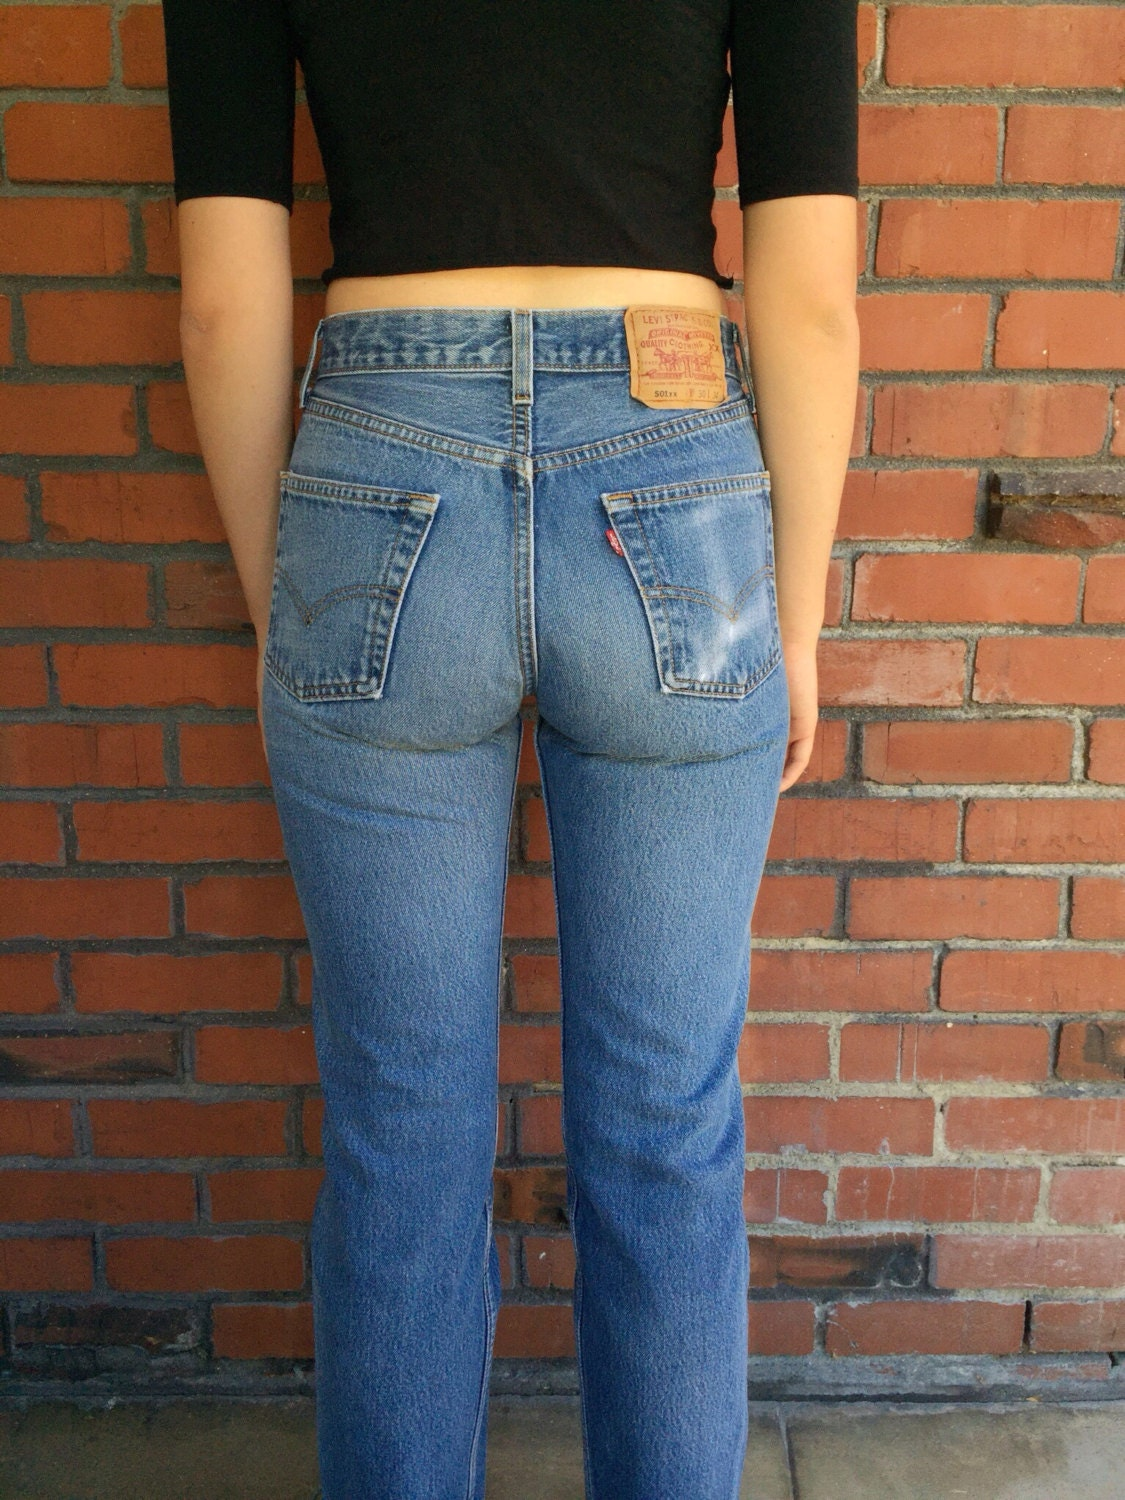 levis 501xx jeans 27 waist vintage mom jeans. Black Bedroom Furniture Sets. Home Design Ideas